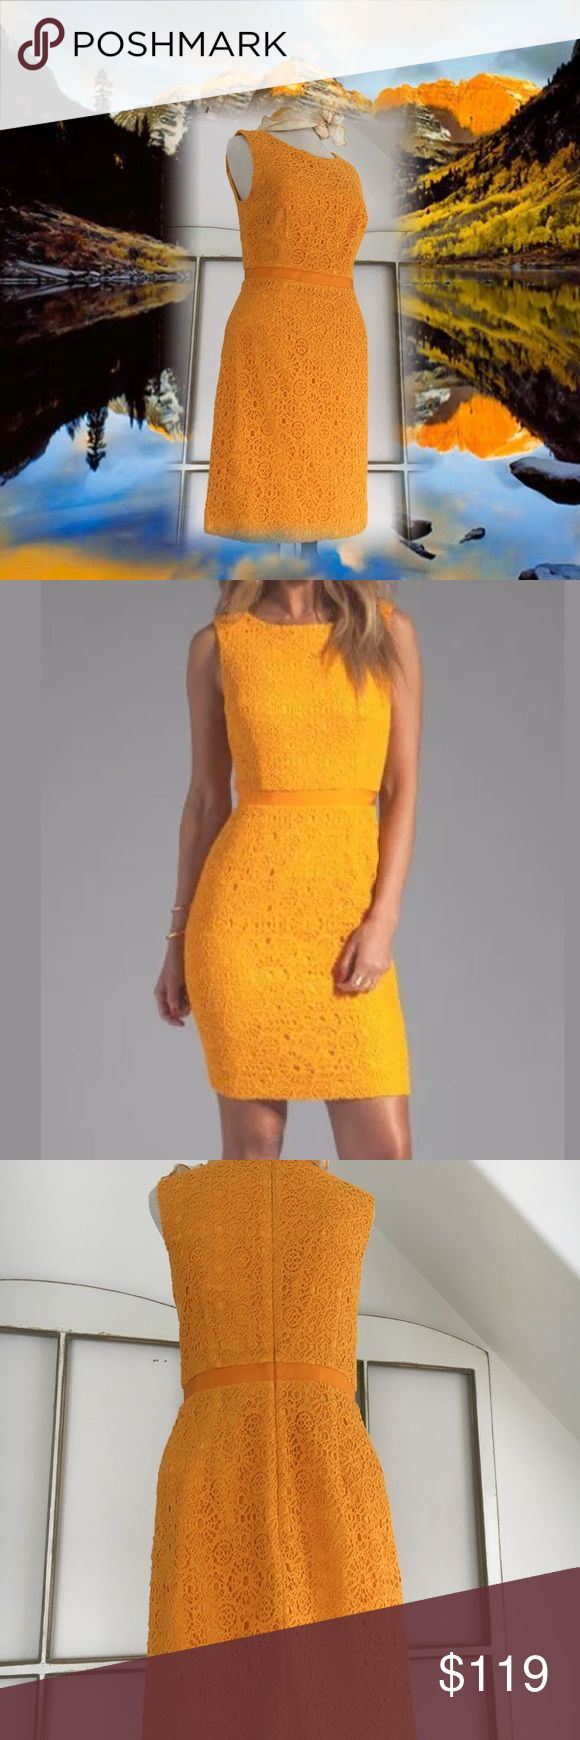 "☀️Trina Turk Dress☀️ Adorable tangerine color lace dress.. ribbon at the waist .. measured flat ... total length :35"" hips:18"" waist:14"" pit to pit:17"" shoulder to shoulder:13.5"" size 4 100% cotton hidden back zip entry ..zipper is 21"" long ... this dress retails at 338.00 worn once for pictures Trina Turk Dresses"